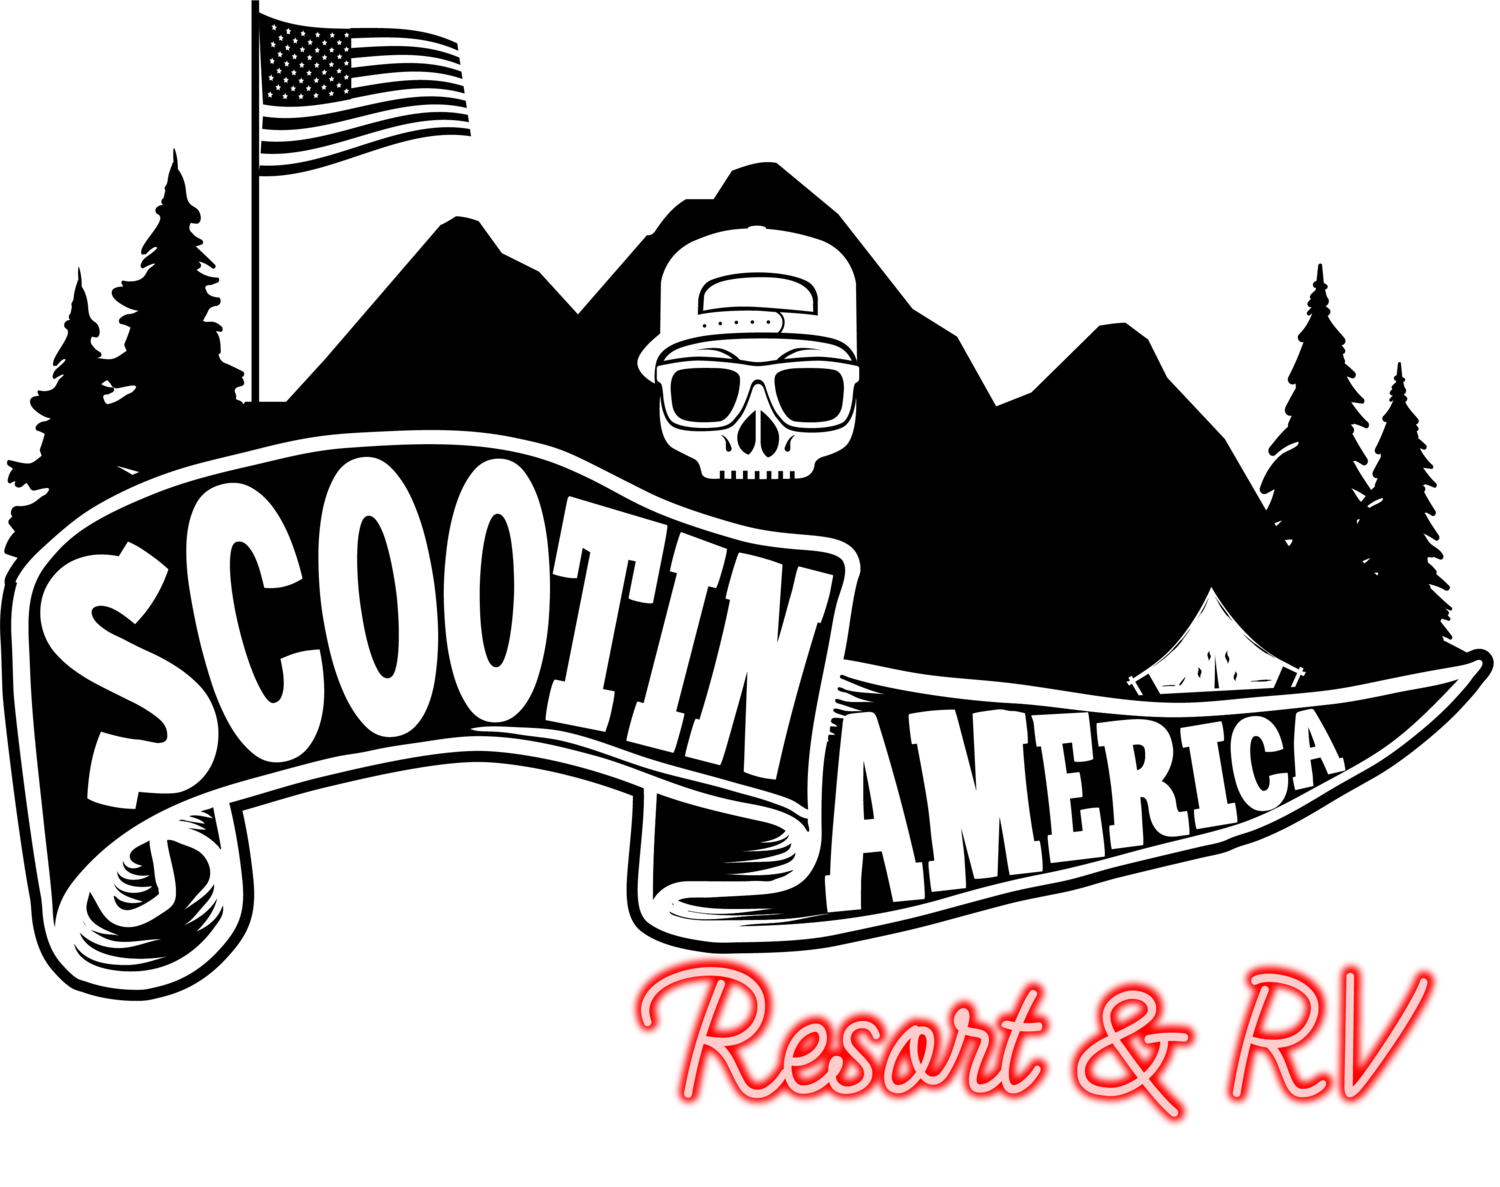 ScootinAmerica Resort